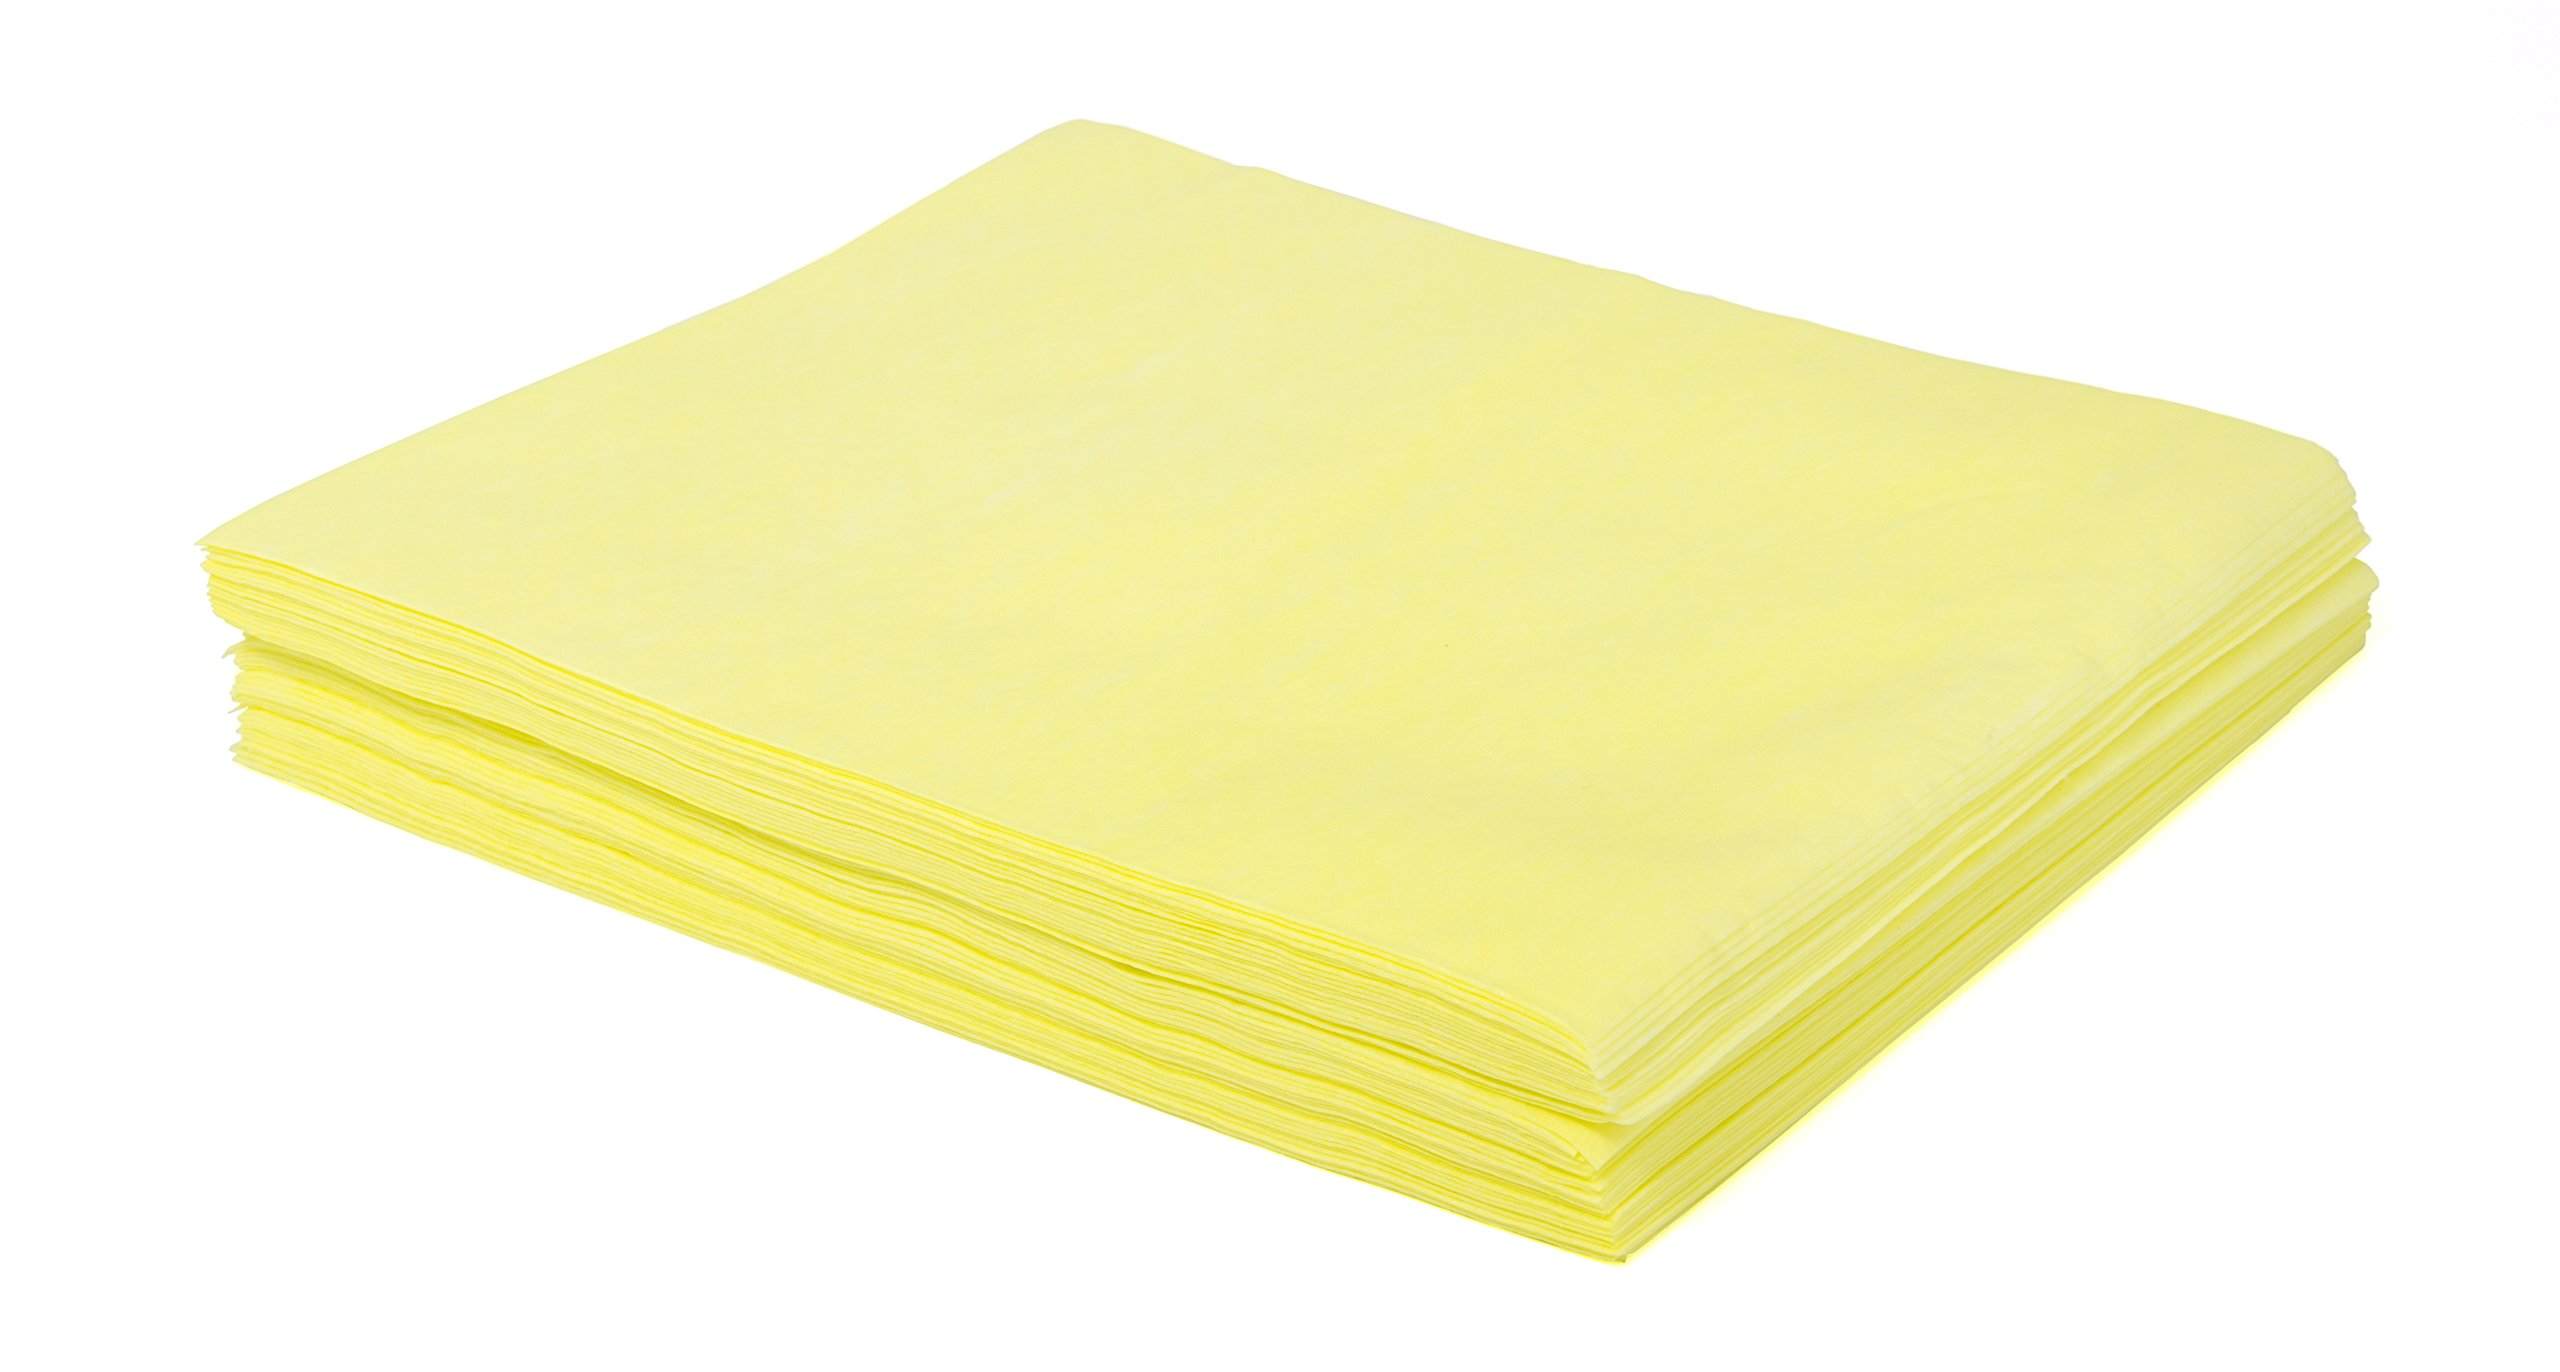 TaskBrand N-DSMFPY Hospeco Mineral Oil Treated Duster, Quarter-Fold, Poly Packed, Specially Treated to Attract and Hold Dust, 18'' x 24'', Yellow (10 Packs of 50)